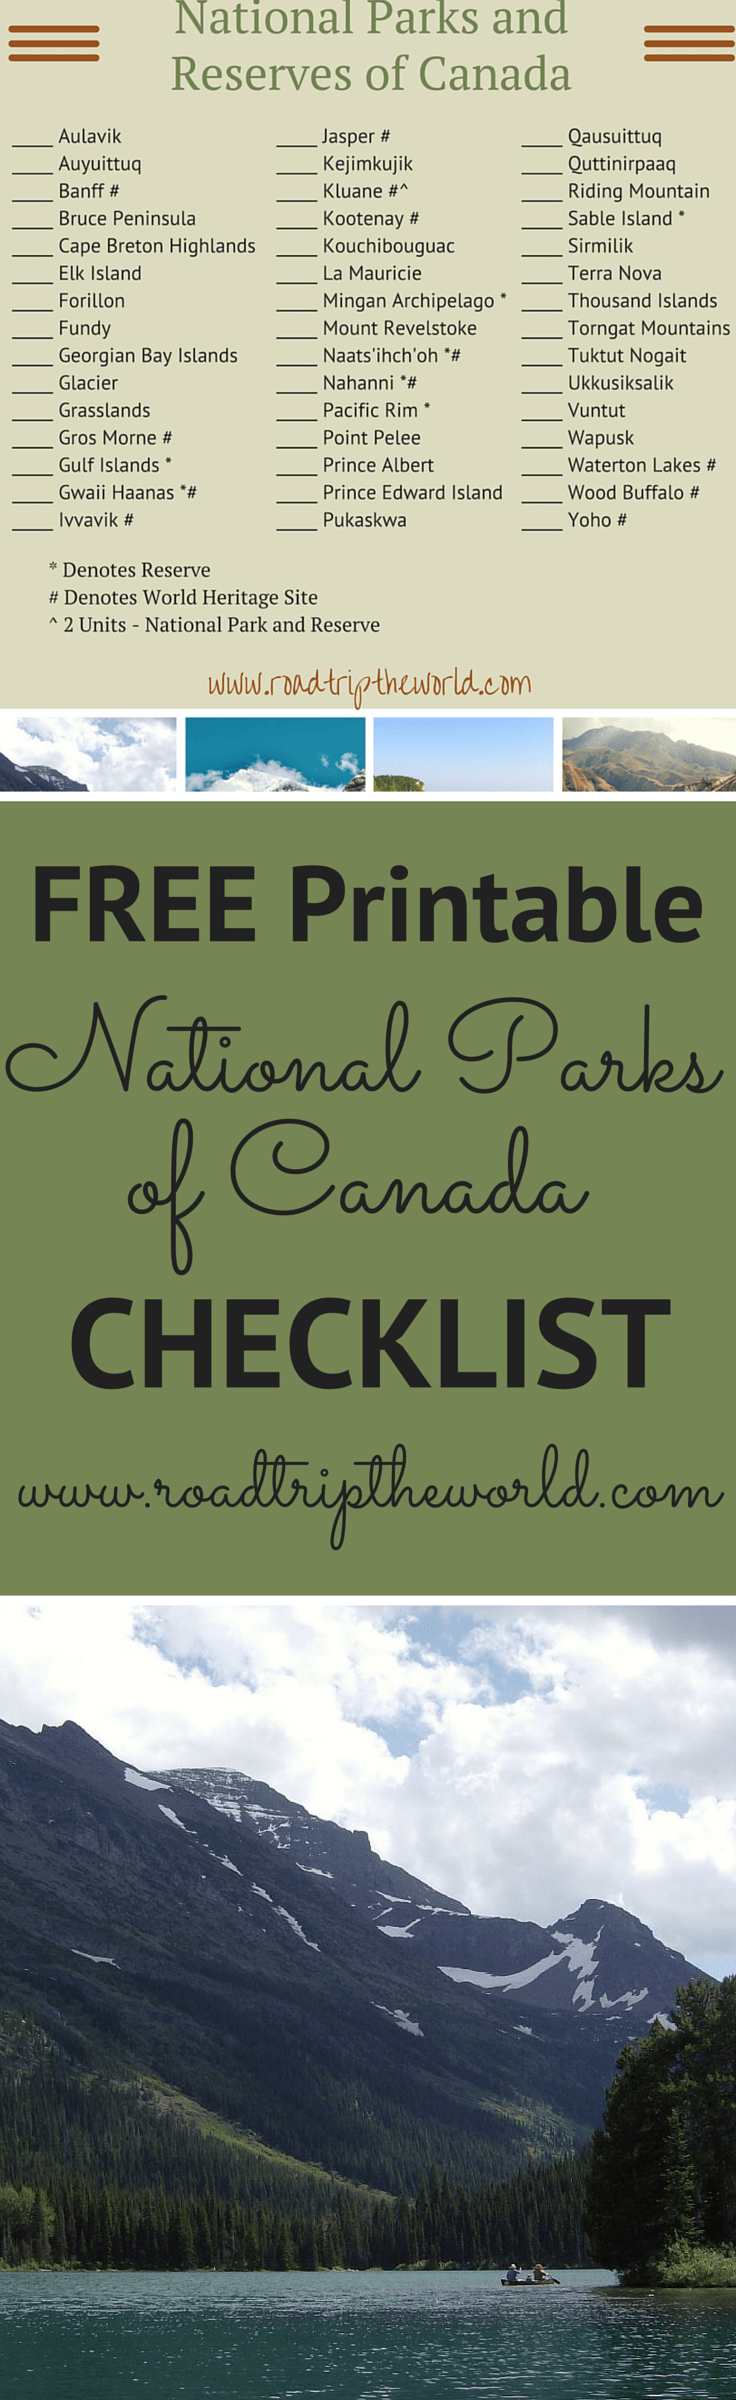 photo regarding Printable National Park Checklist named Canada Nationwide Parks Printable List - Highway Getaway the International